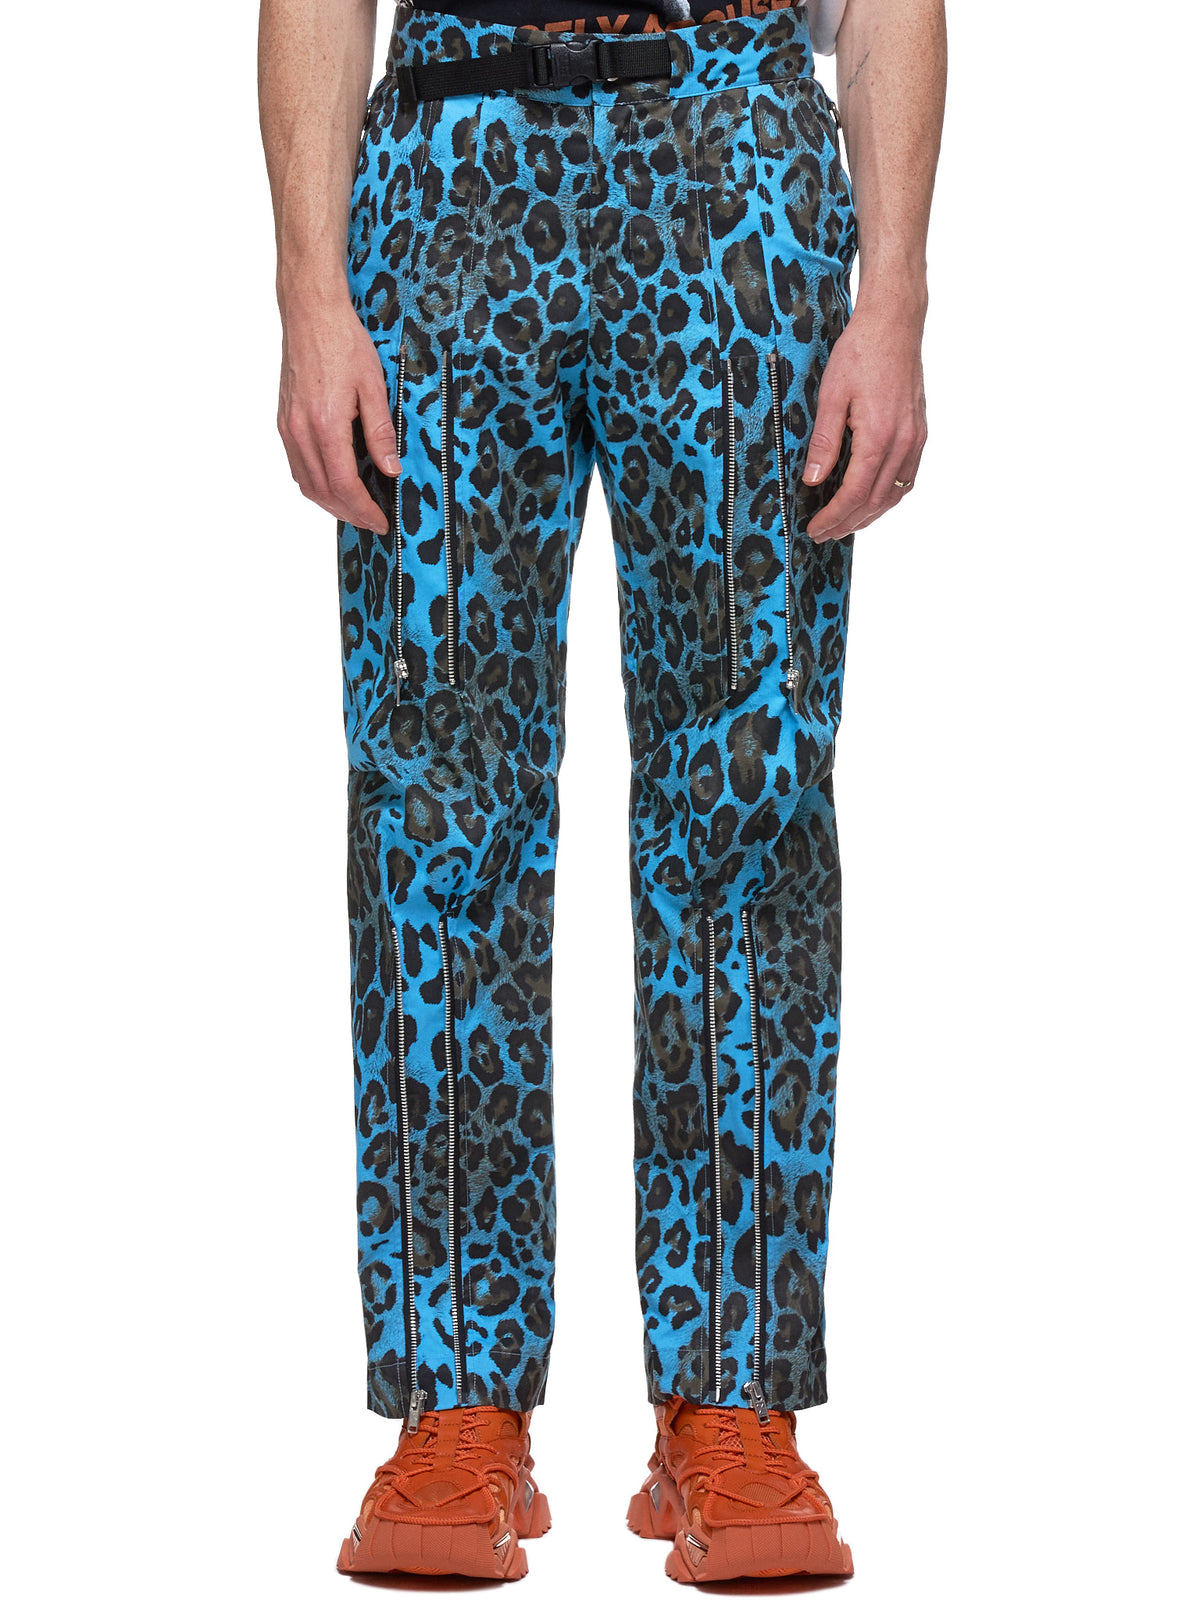 Leopard Trousers (NN13-PT11B-BLUE)